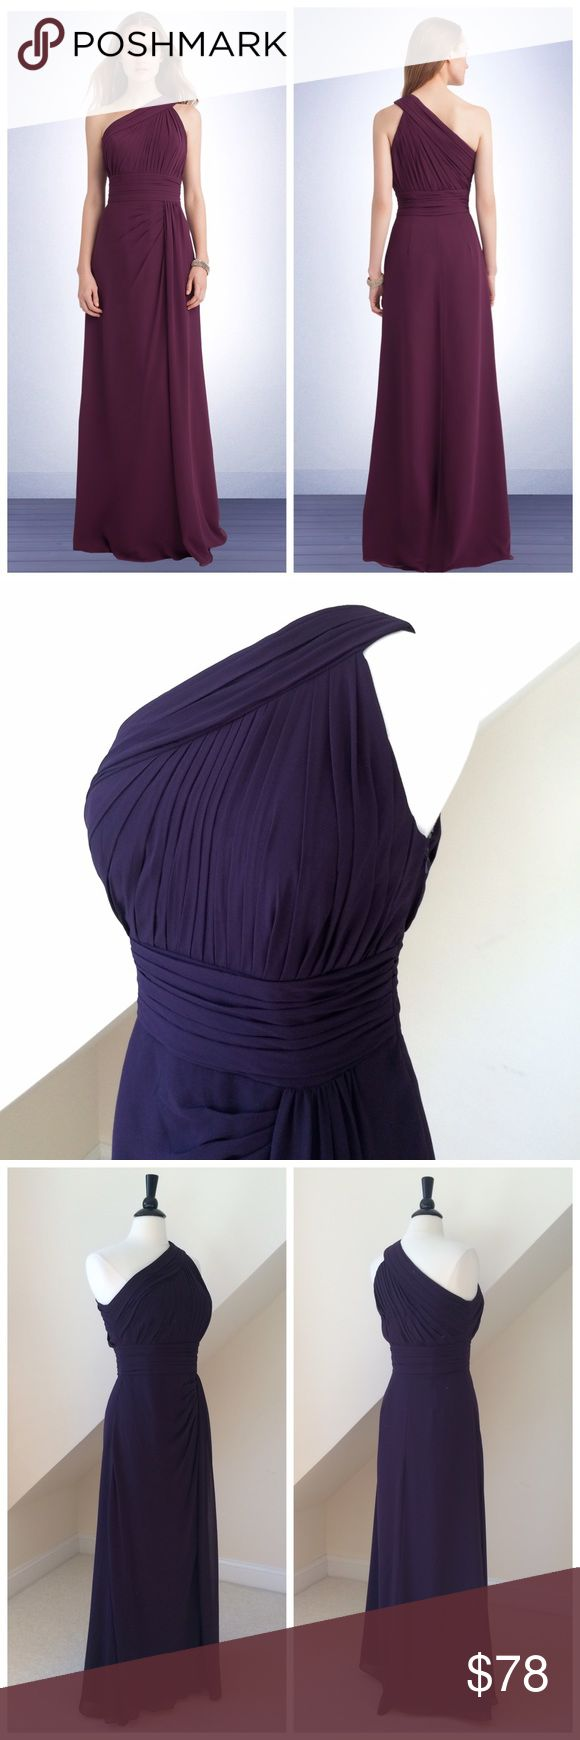 NWT Bill Levkoff Bridesmaid Dress NWT Bill Levkoff Bridesmaid Dress...timeless chiffon bridesmaid gown...fashionable ruched bodice with a single asymmetrical shoulder strap. The ruched bodice ends at the pleated horizontal waist band that cinches in at the natural waist to emphasize your curves...pleats accent the front side of the A-line floor length skirt...side gathers and a slit complete the skirt...ruching on the bodice continues to the asymmetrical back and the zipper is hidden on the…